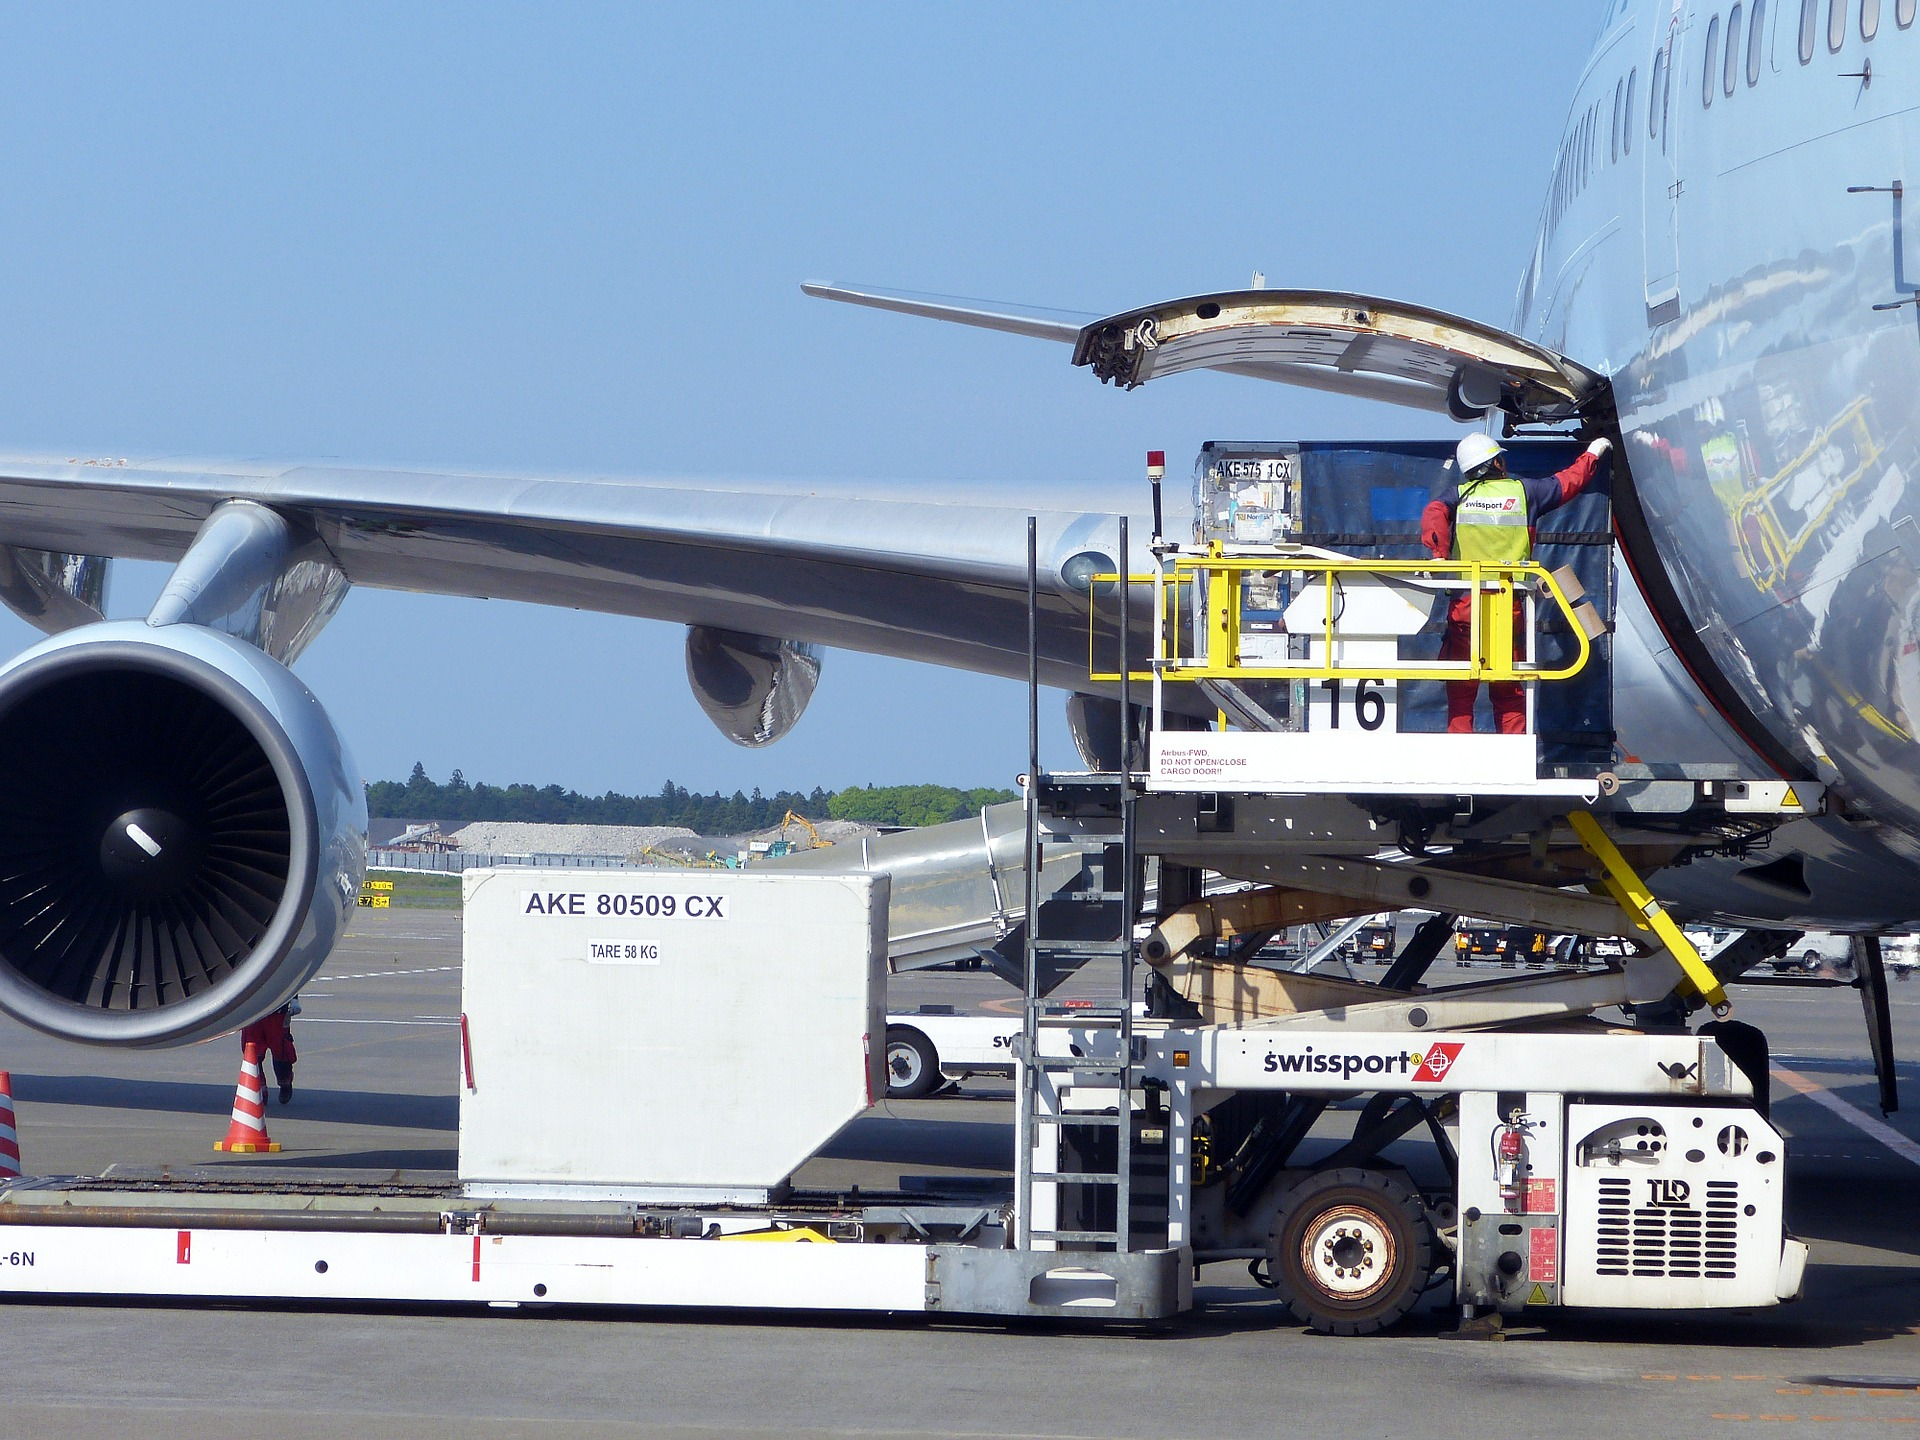 a ULD containing air freight behind loaded on the lower deck of an airplane